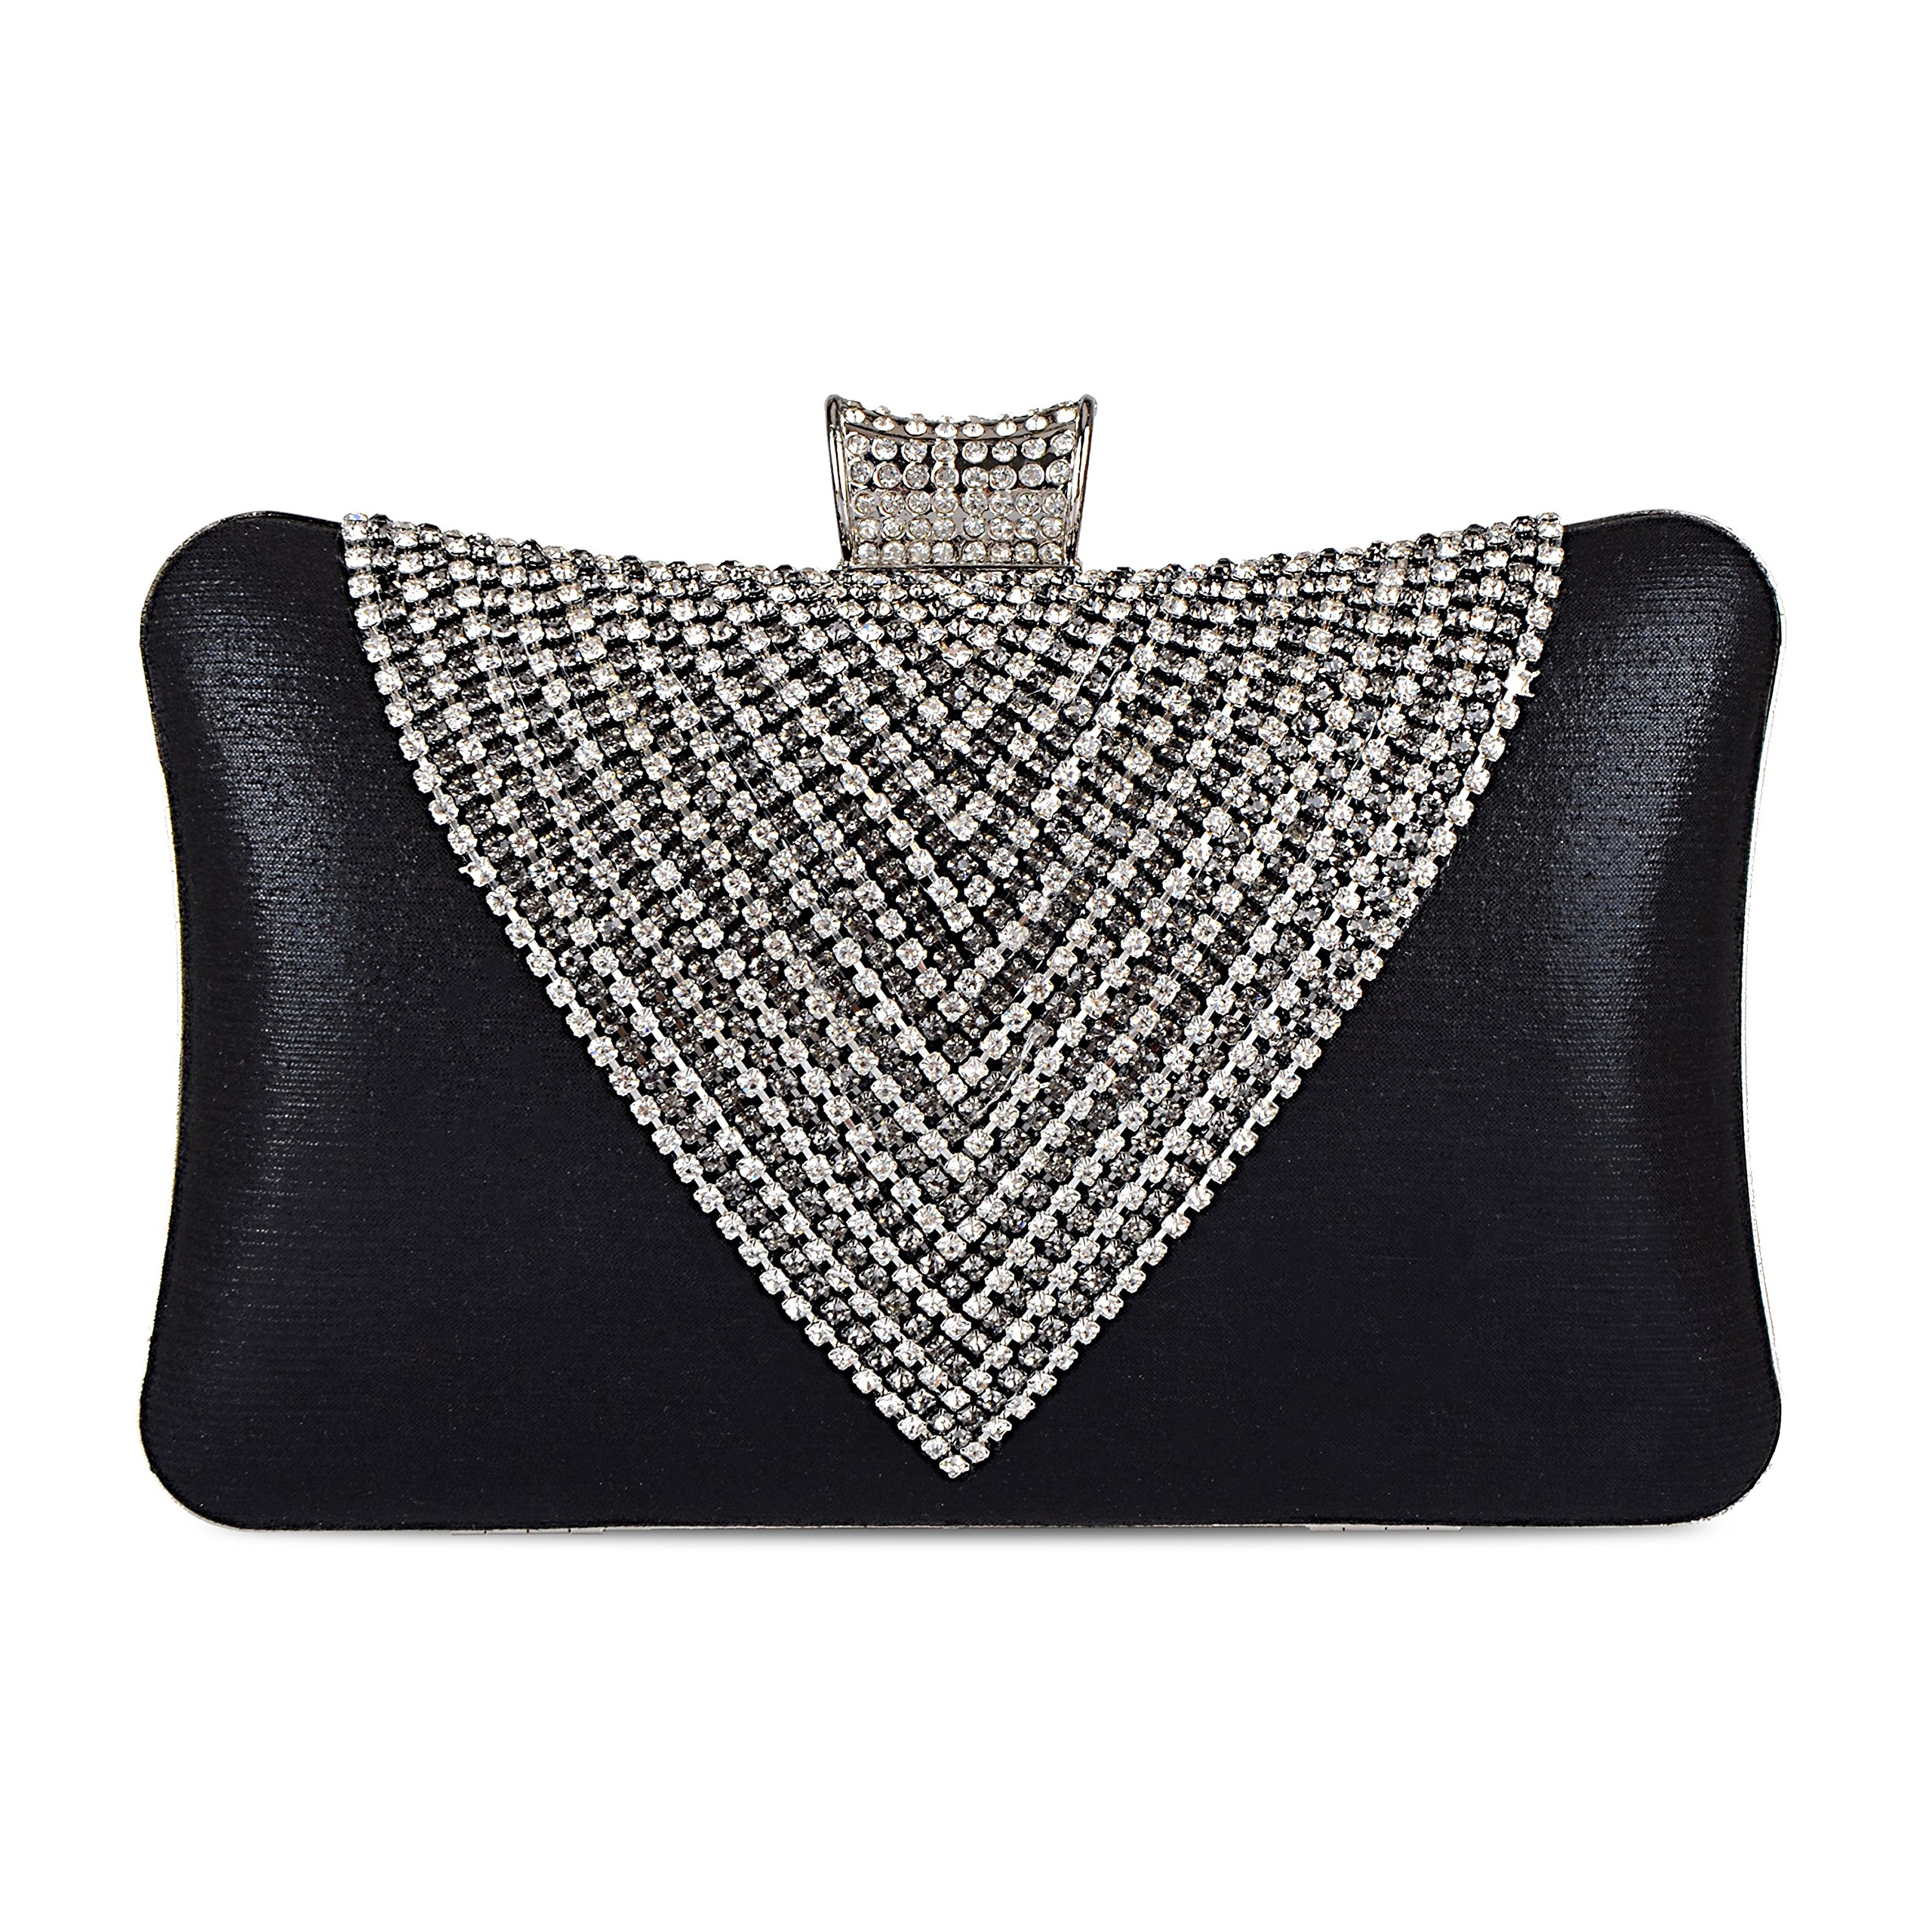 Women's Handbags Evening Envelope Rhinestone Beaded Clutches Bag, Black